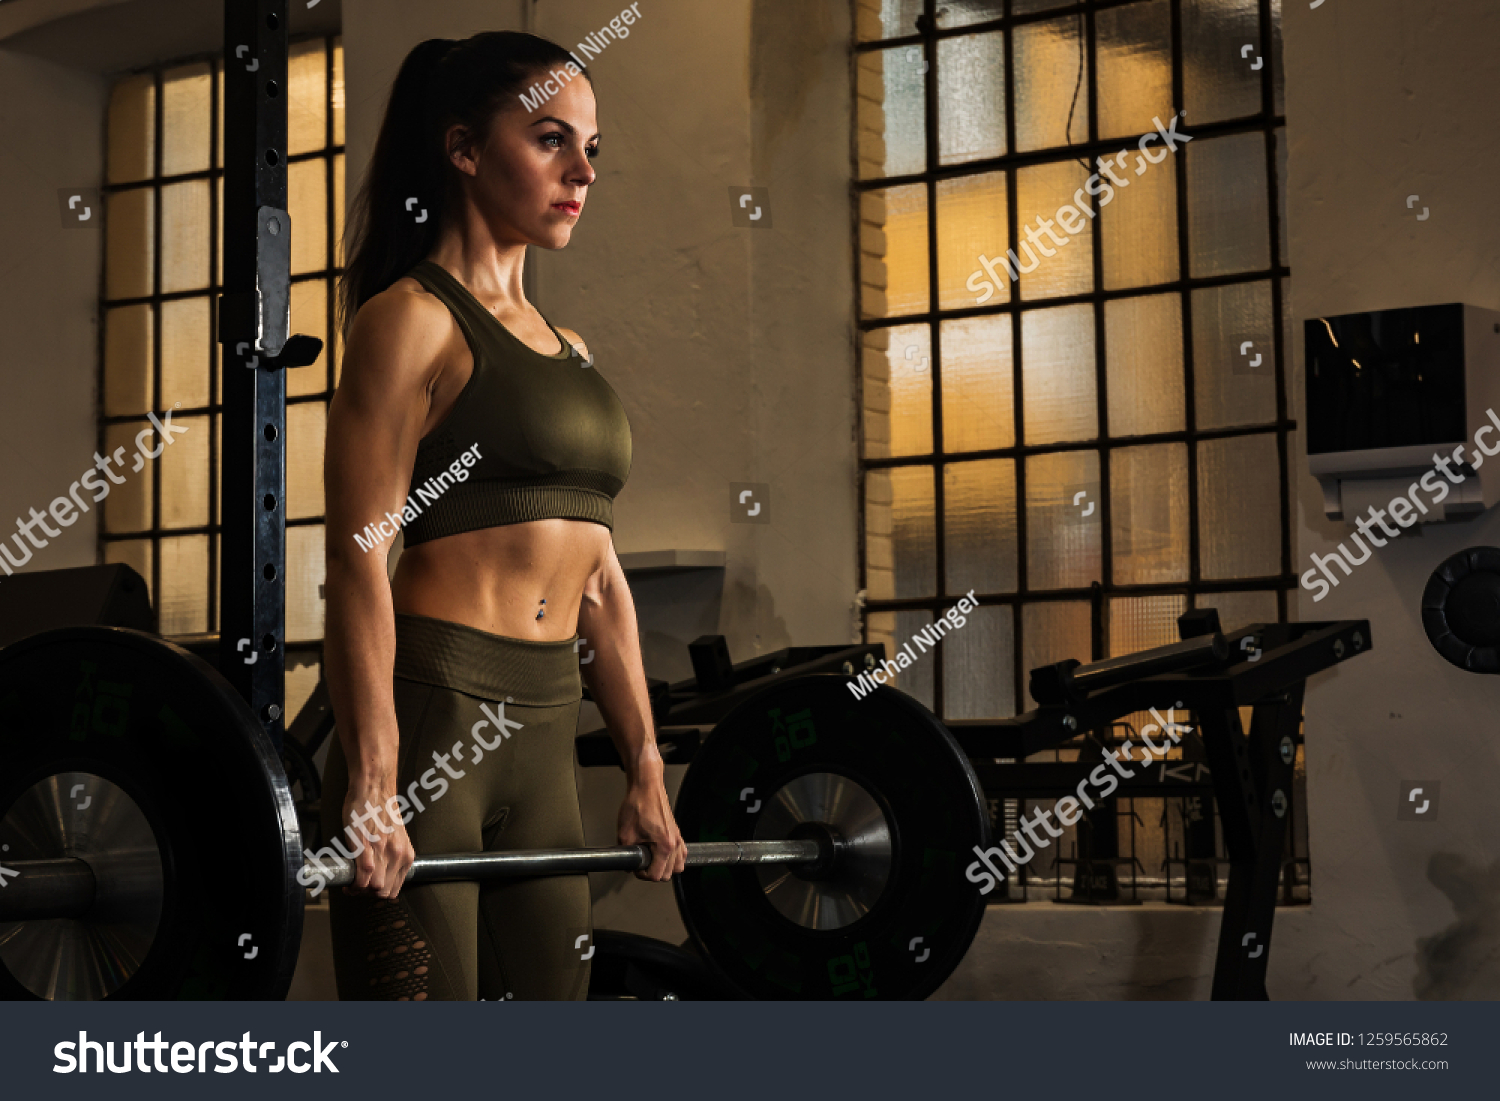 beautiful woman is workouting at the gym,  strengthens the barbell, lifting large weights